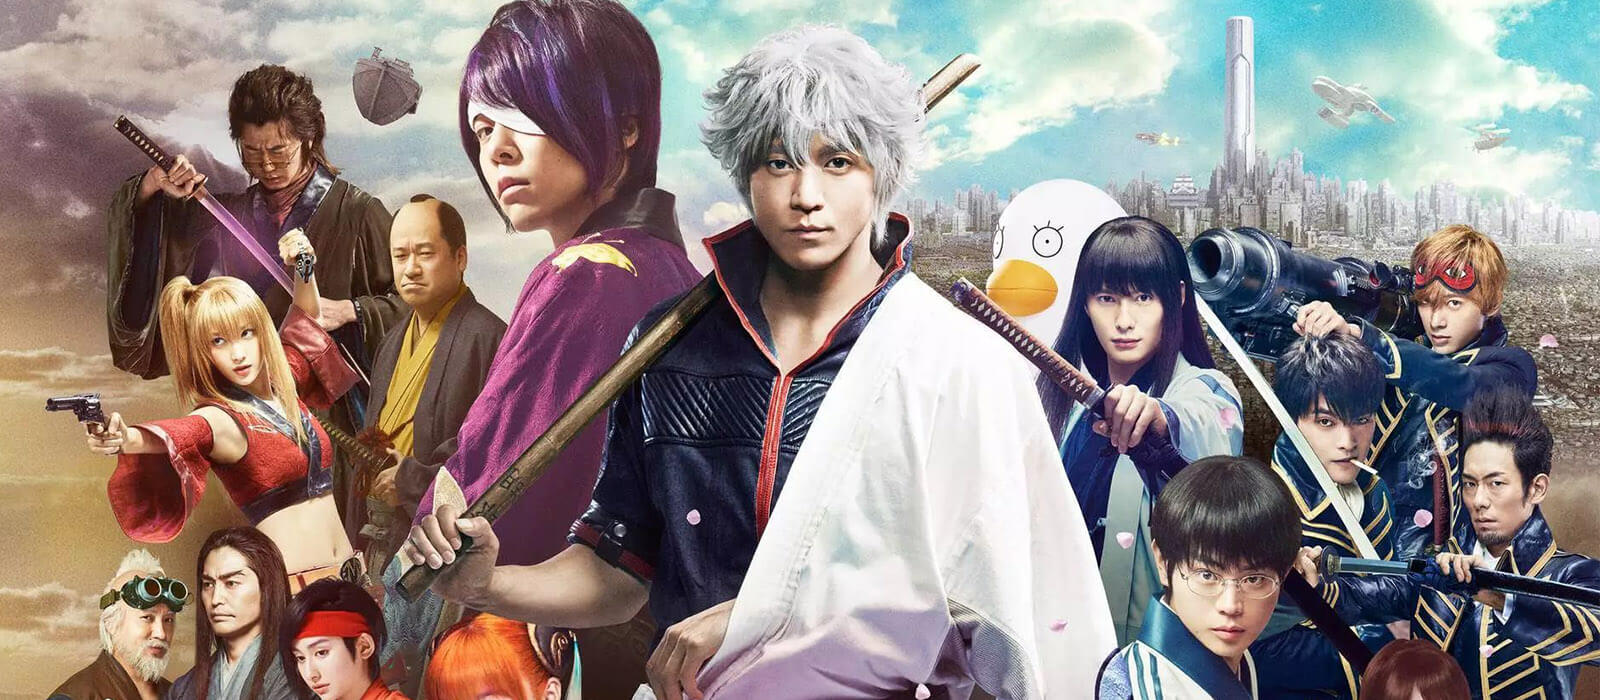 Promo poster for Gintama live-action